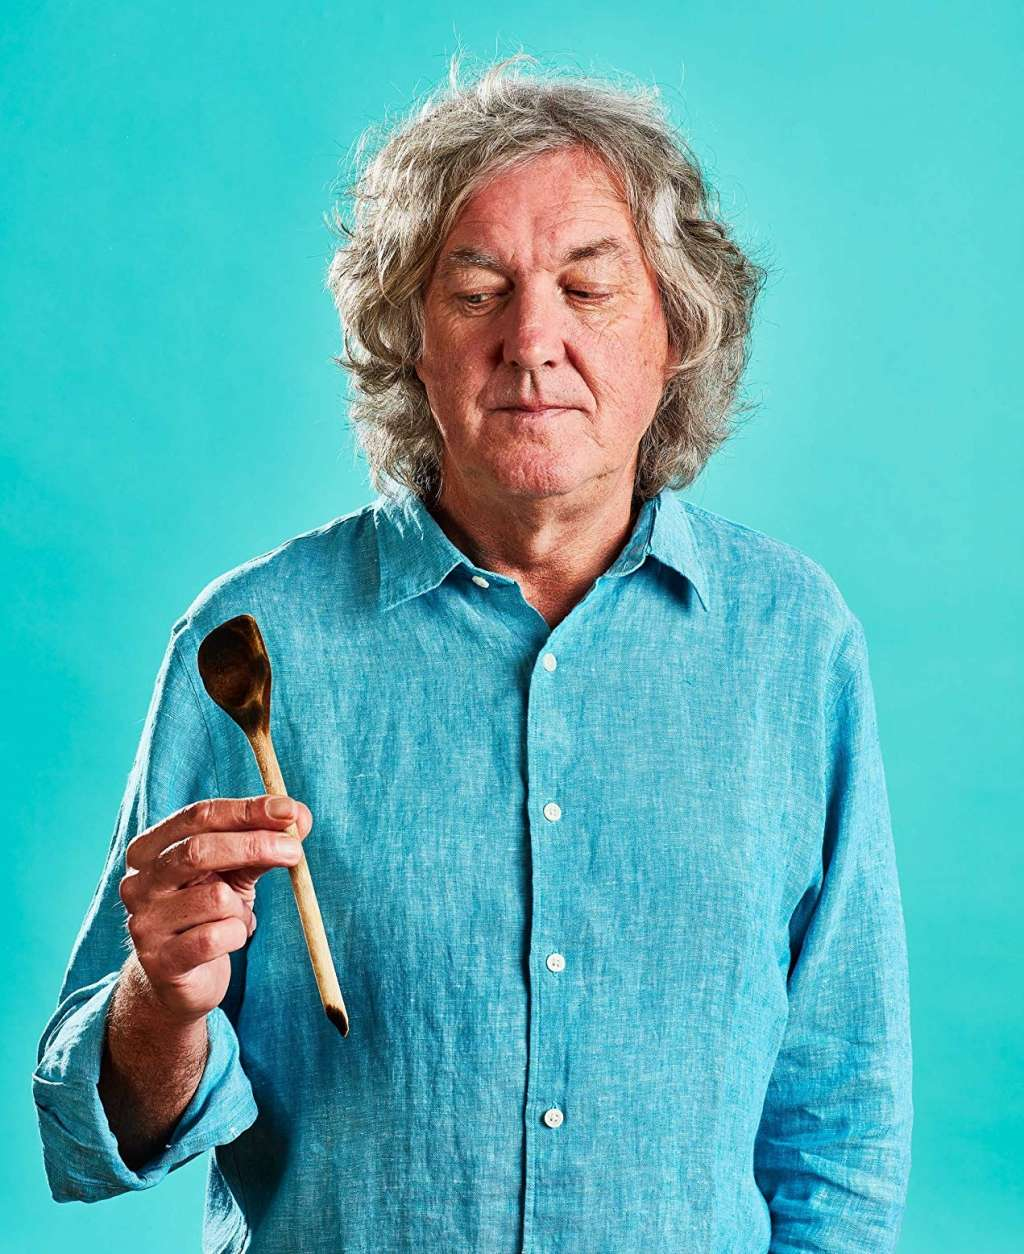 James May: Oh Cook! kapak